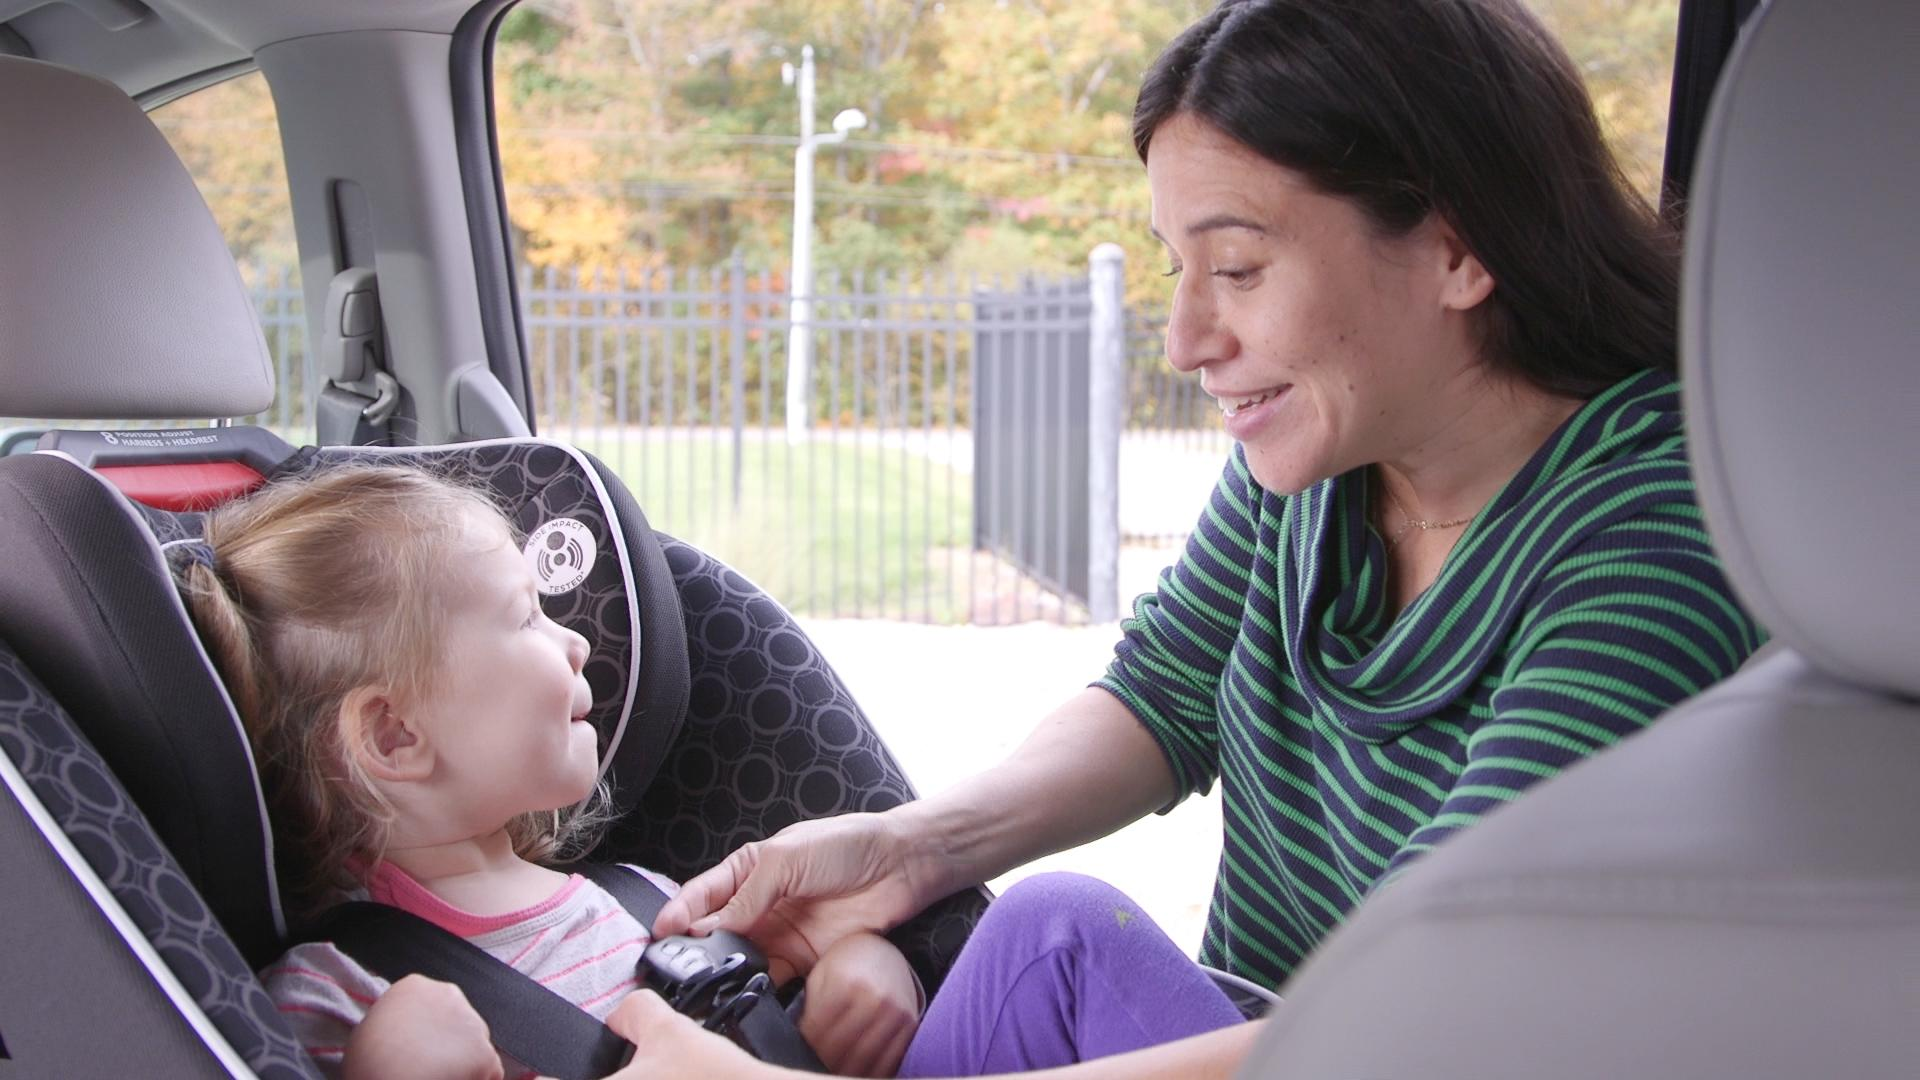 Baby cribs reviews consumer reports - Why You Should Buy A Convertible Car Seat Sooner Rather Than Later